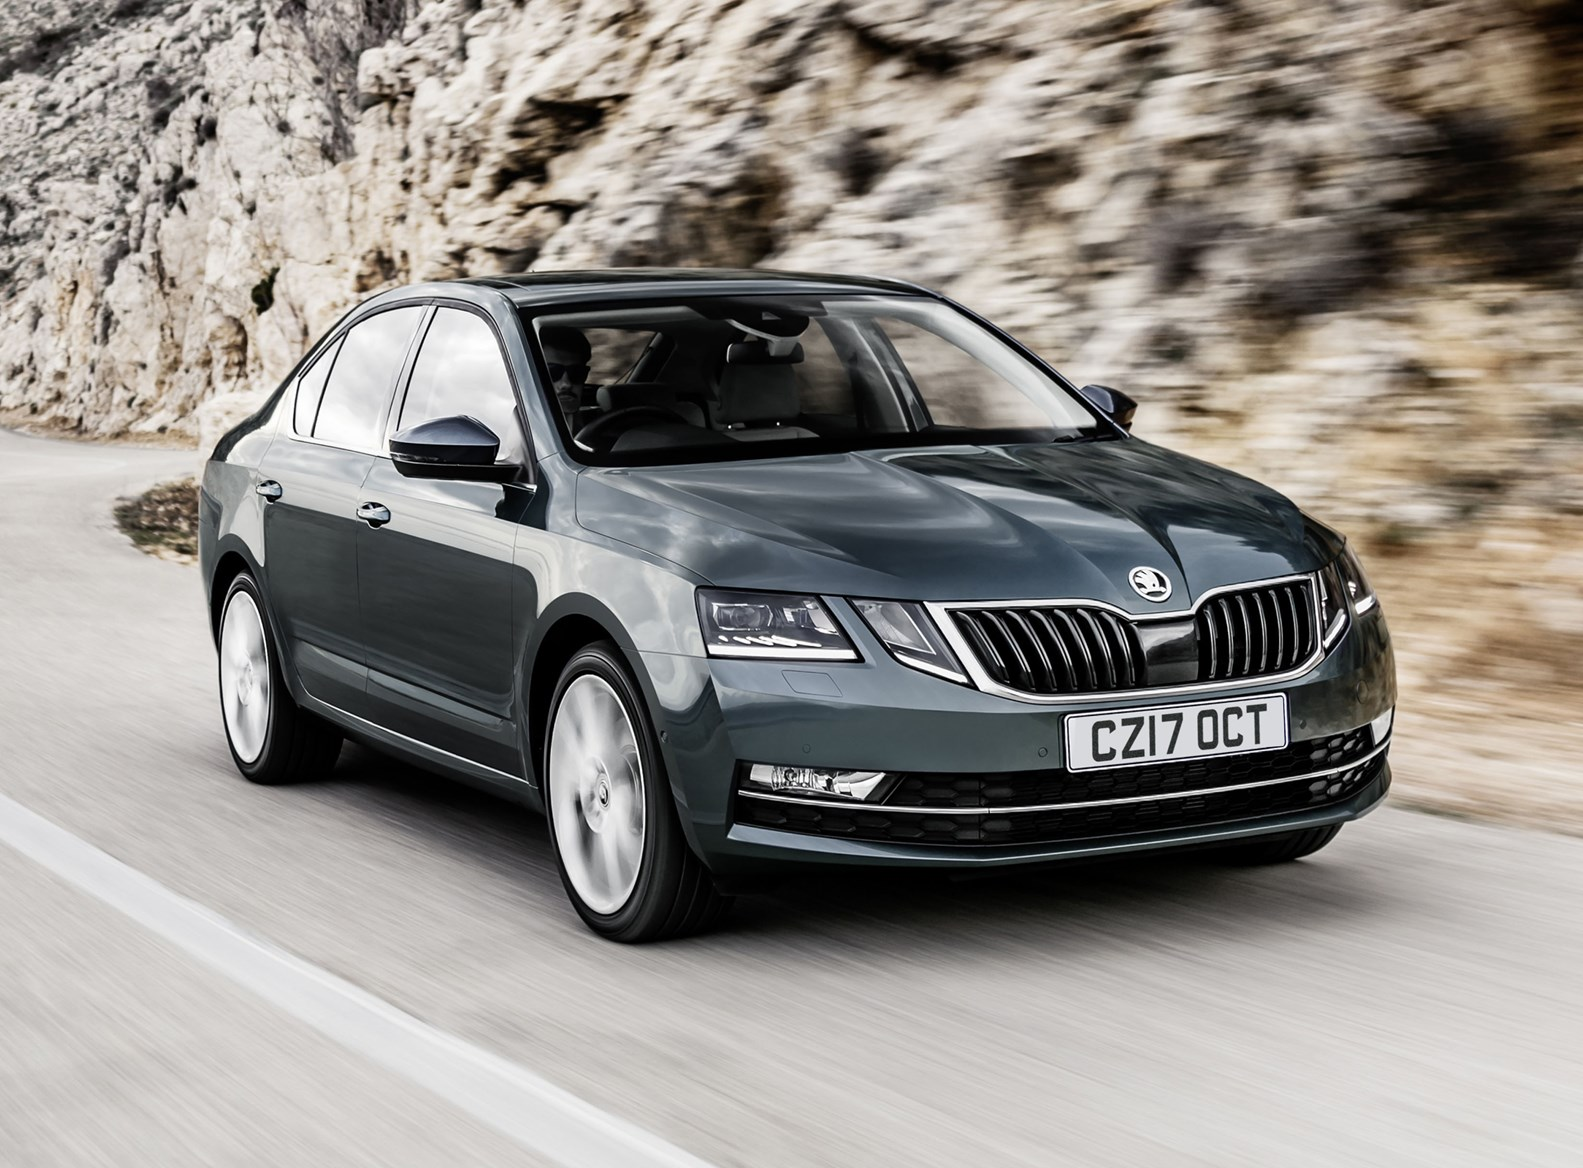 skoda octavia hatchback review parkers. Black Bedroom Furniture Sets. Home Design Ideas